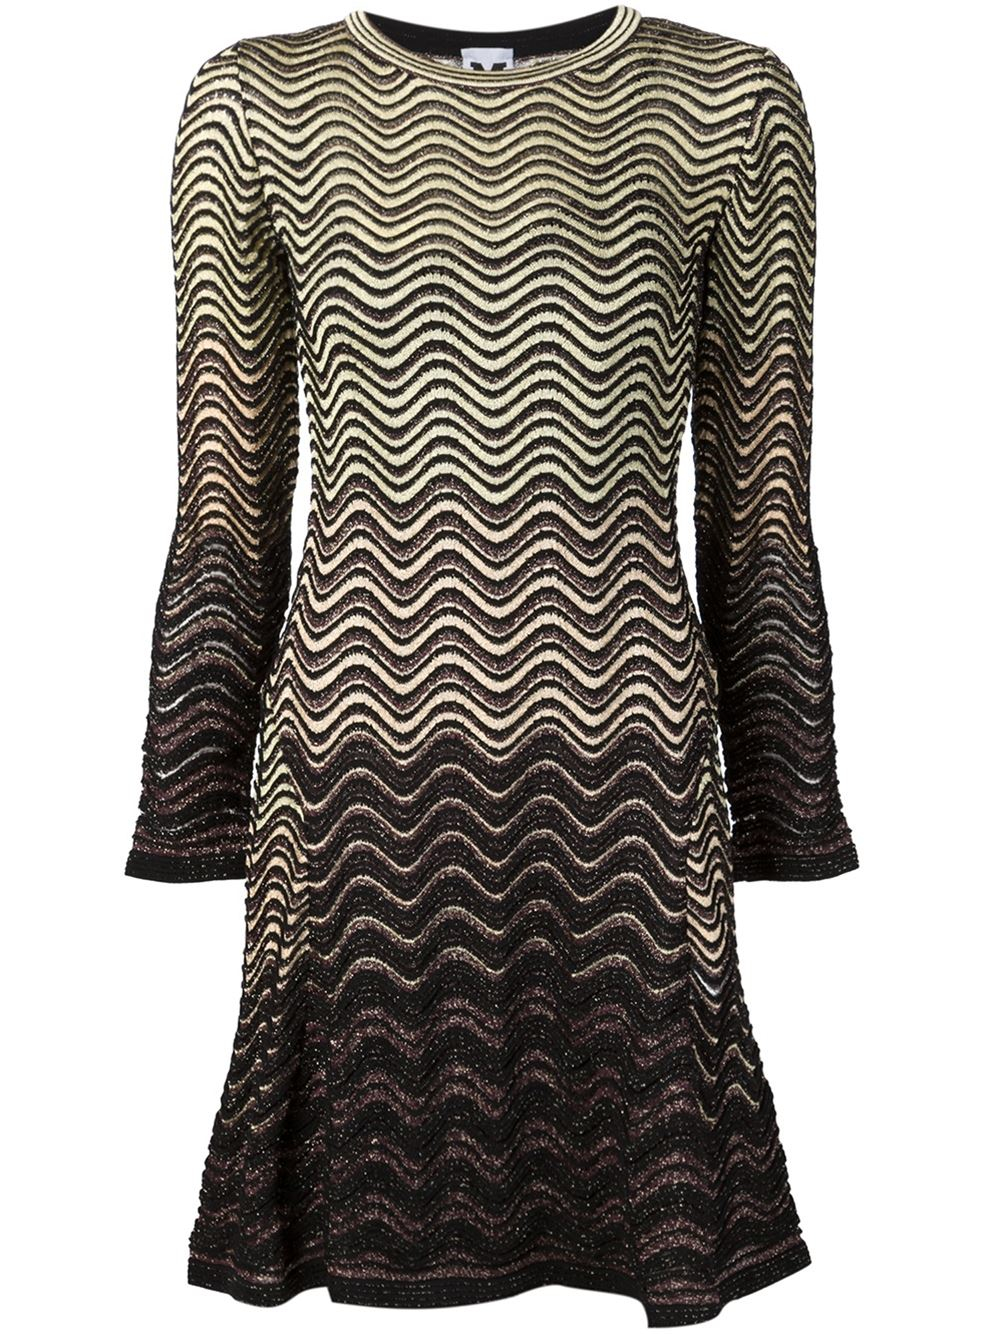 M missoni Wave Pattern Knit Dress in Yellow (YELLOW & ORANGE) Lyst